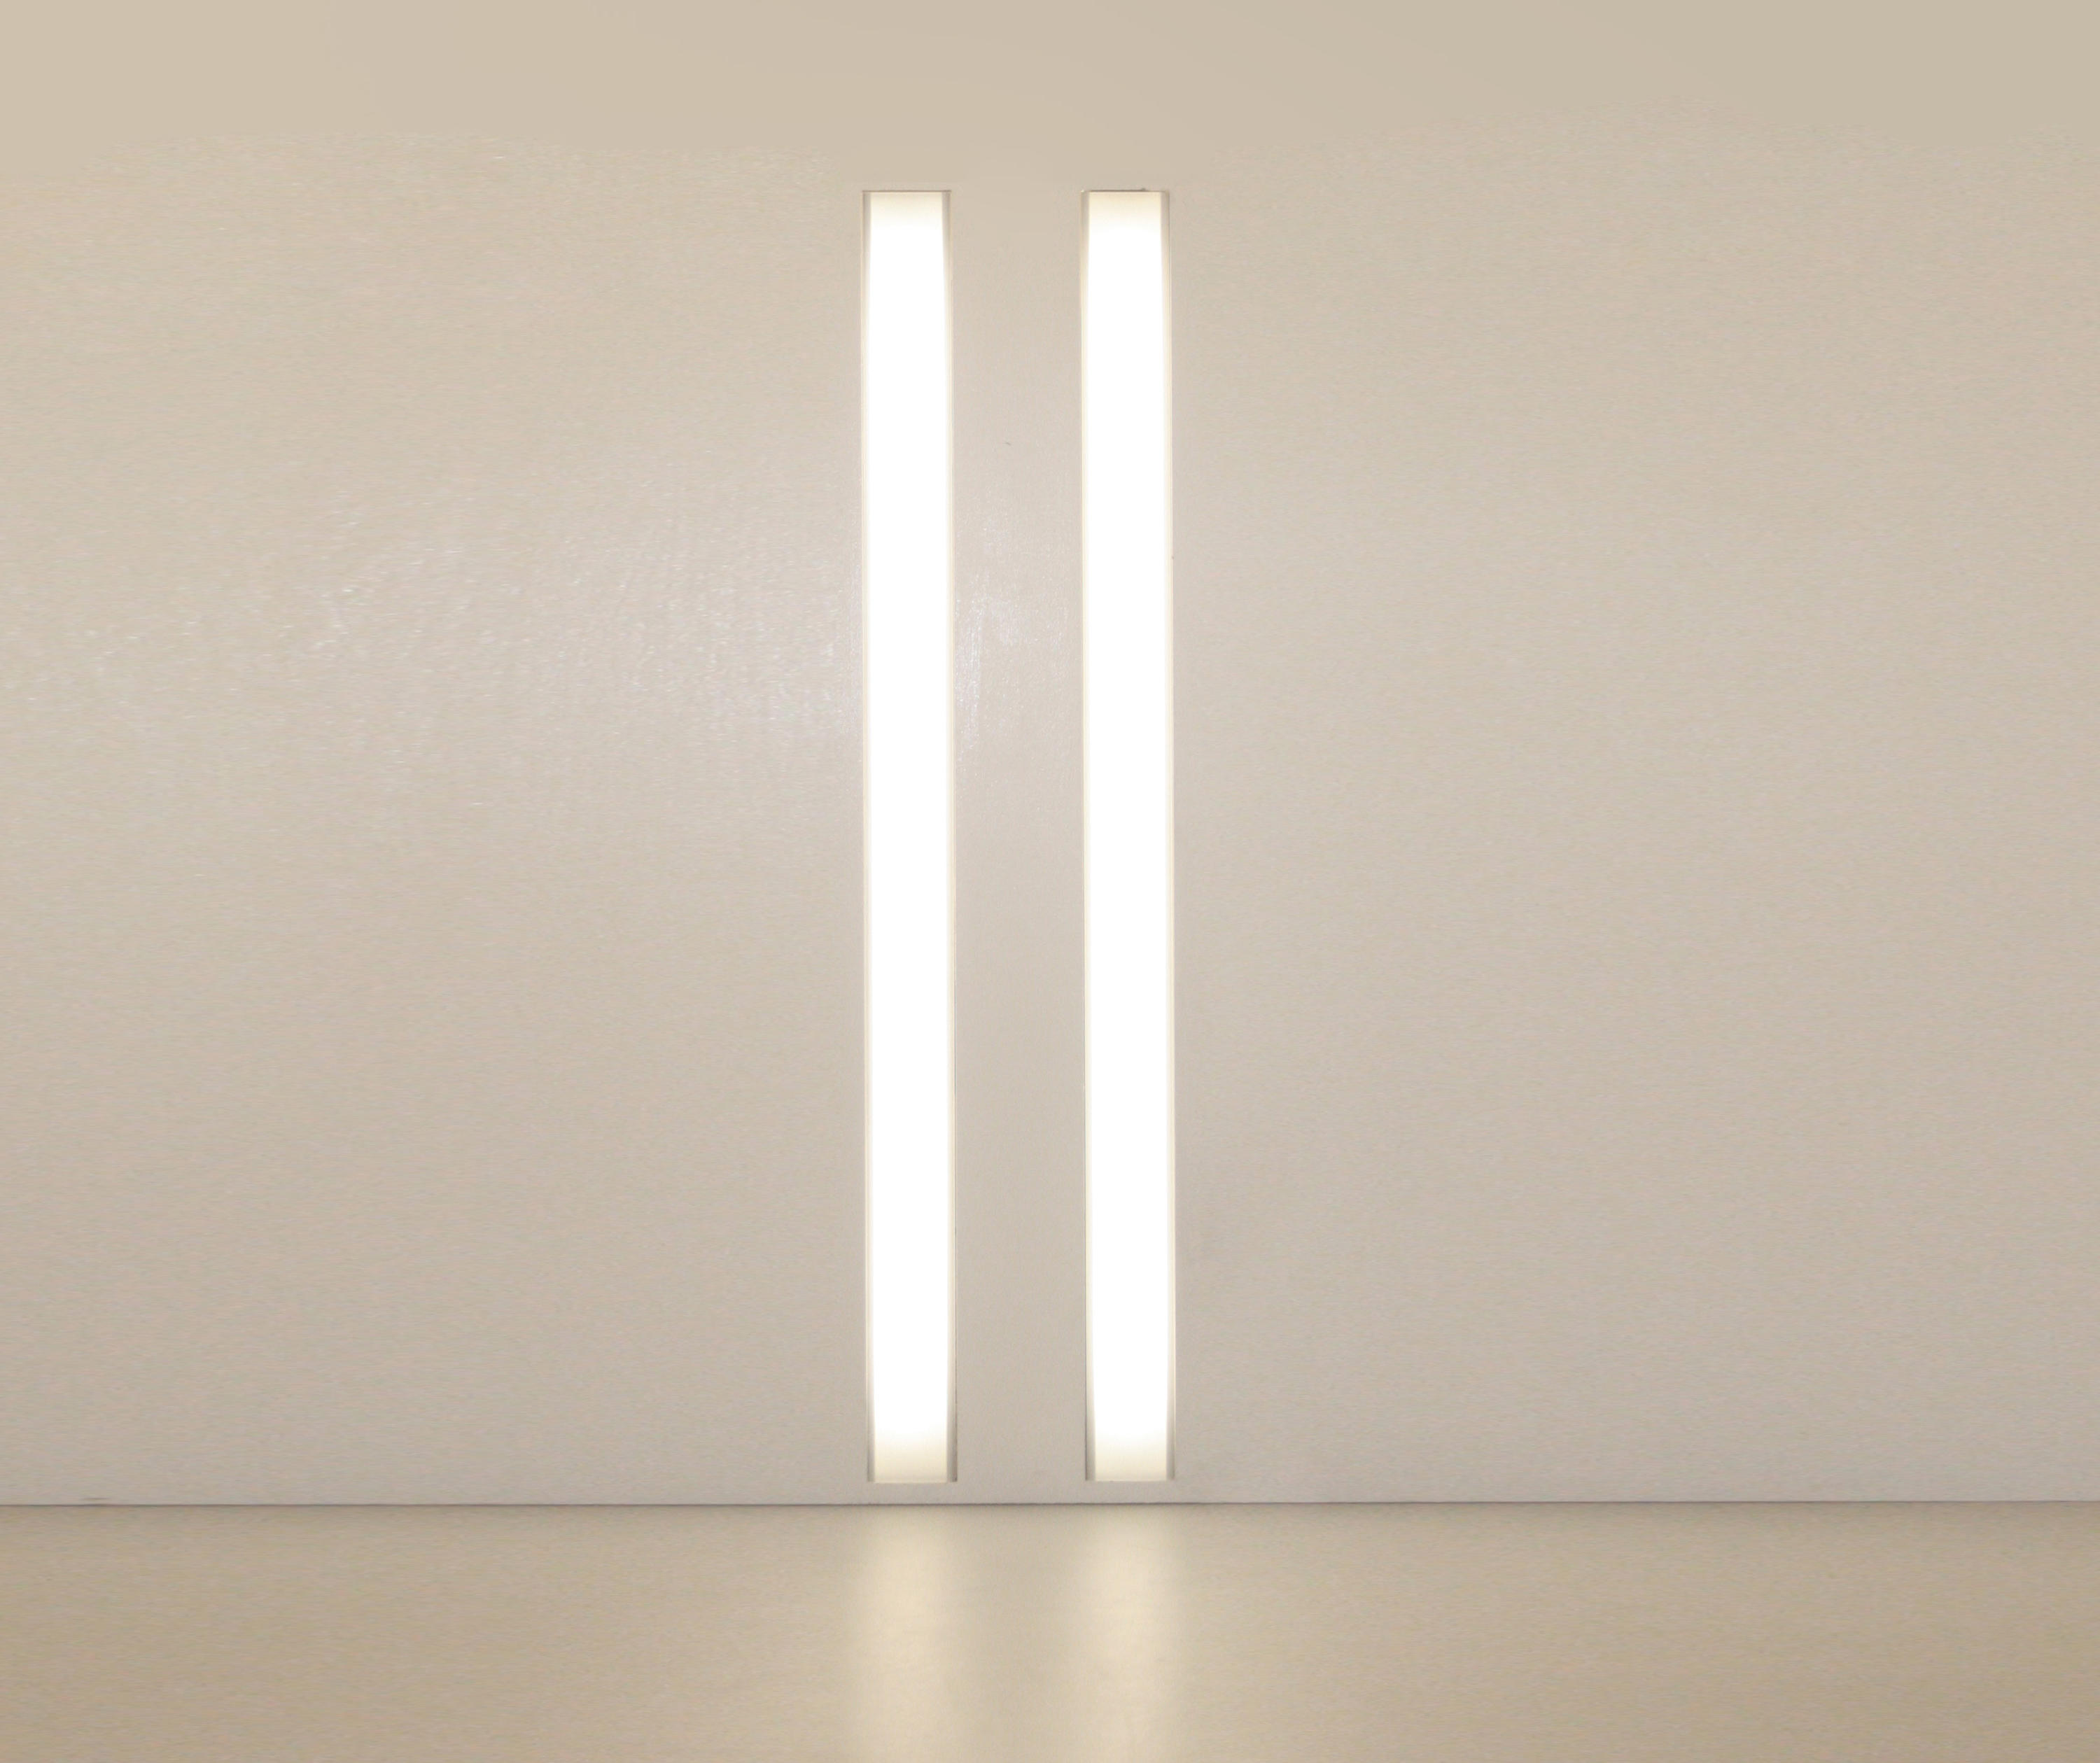 Eb995 recessed wall lights from ayal rosin architonic eb995 by ayal rosin recessed wall lights aloadofball Choice Image